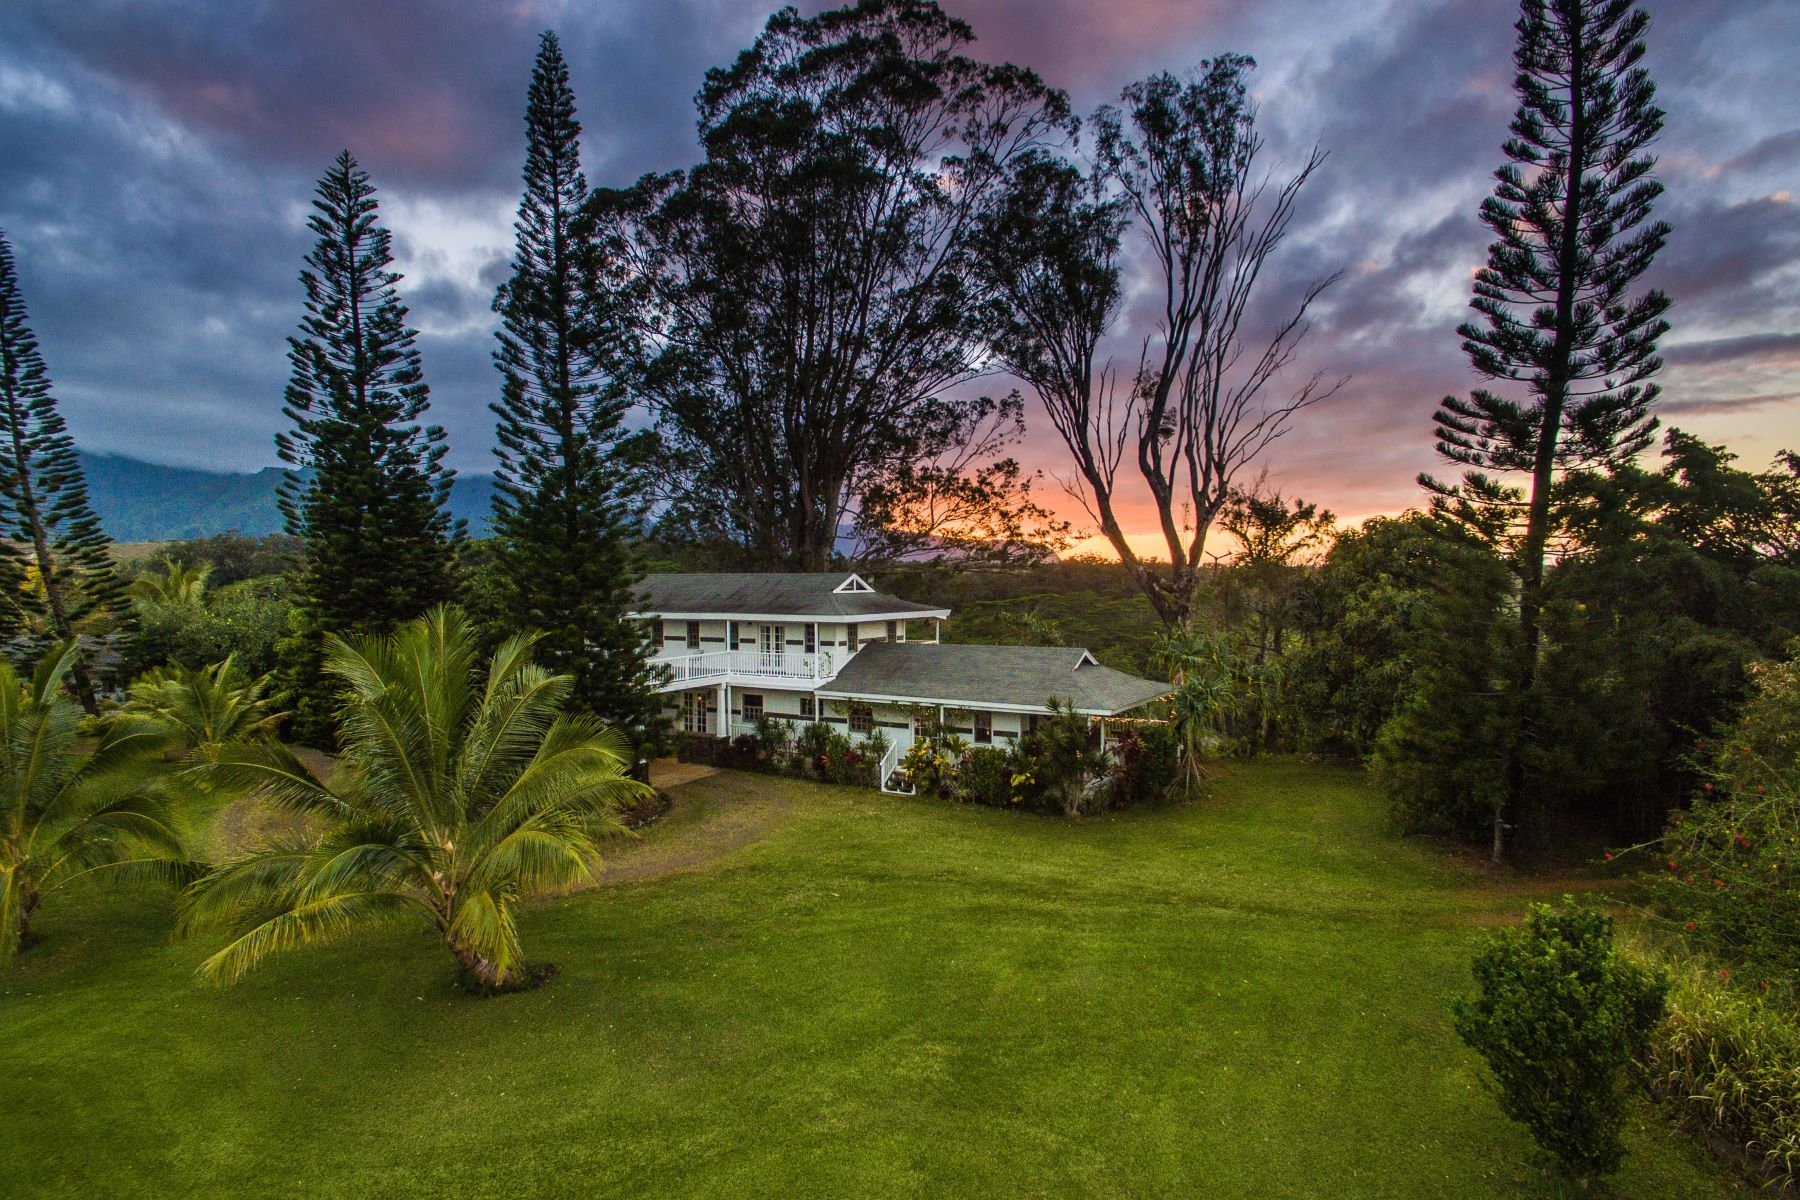 Частный односемейный дом для того Продажа на Kauai 5-Acre Multi-Family Estate with Mountain, Waterfall, Sunset & Valley Views 5150 Kahiliholo Road #A Kilauea, Гавайи 96754 Соединенные Штаты